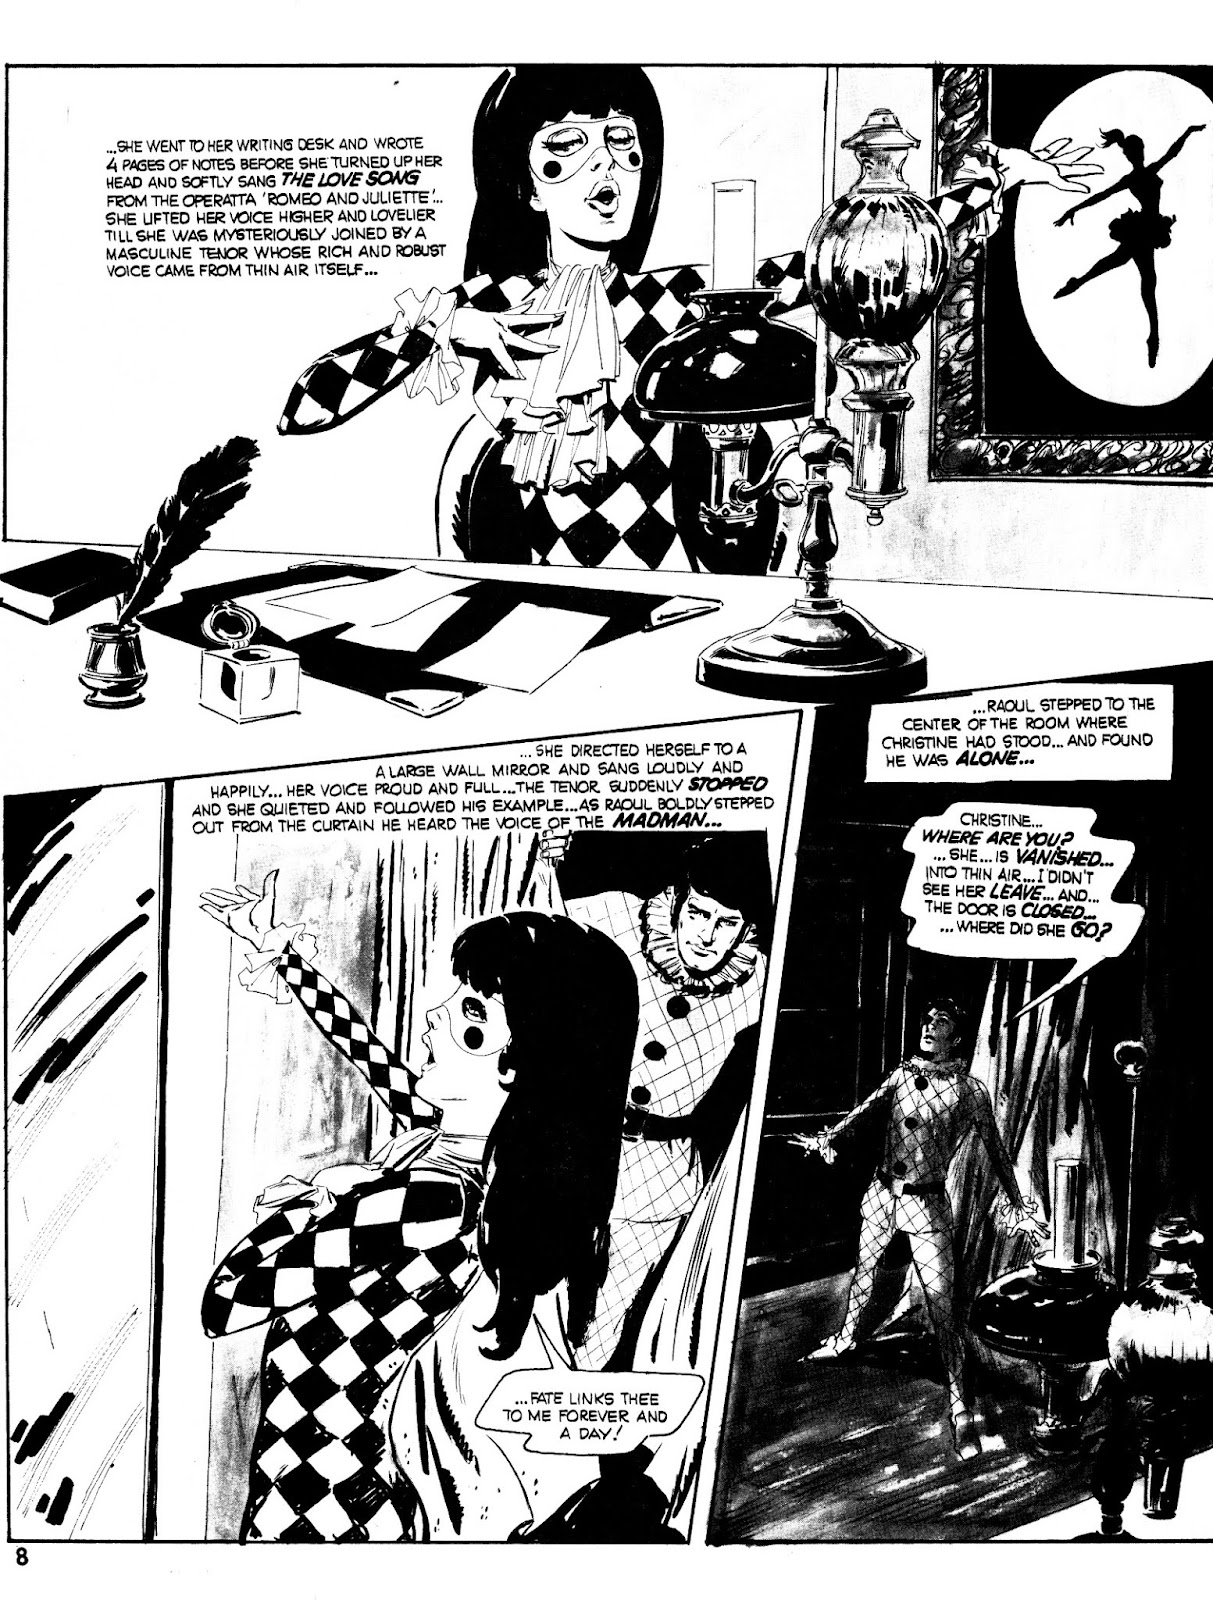 Scream (1973) issue 3 - Page 8